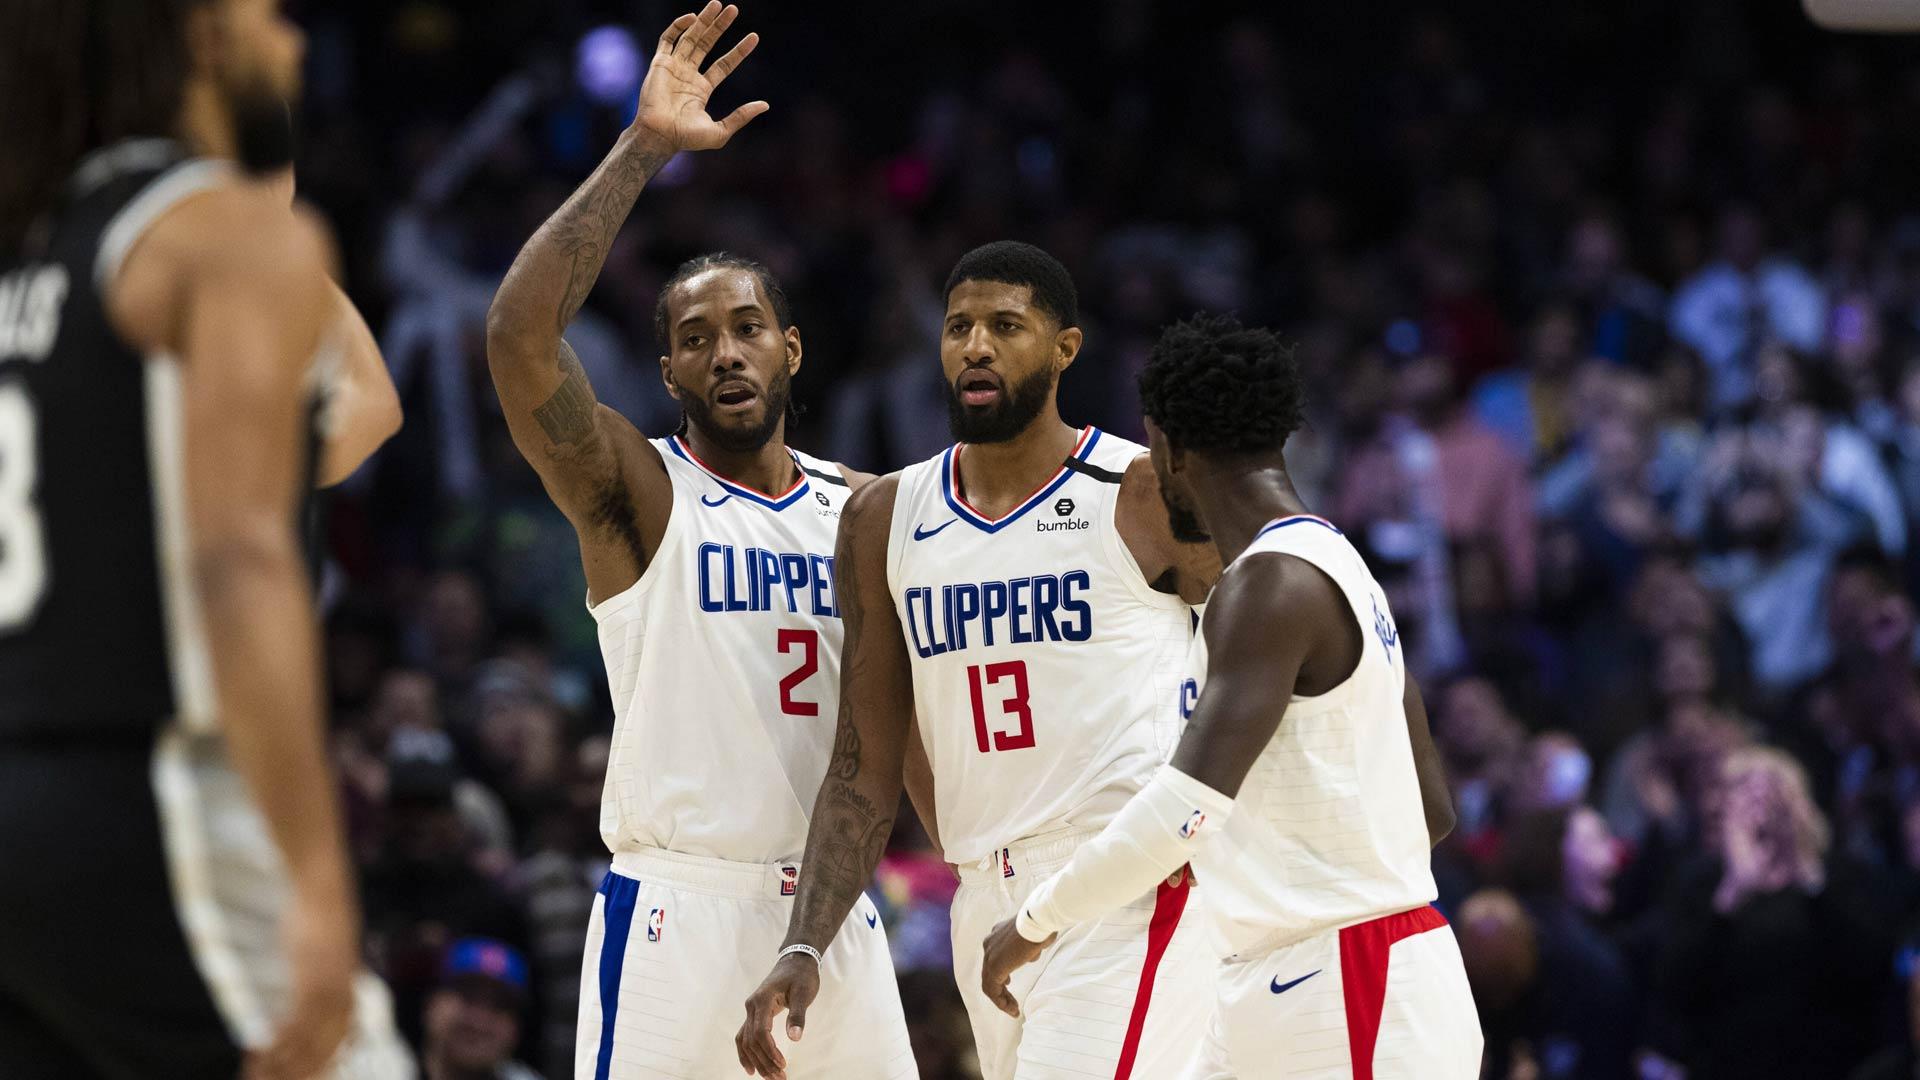 Clippers Mavs Game 7 Live